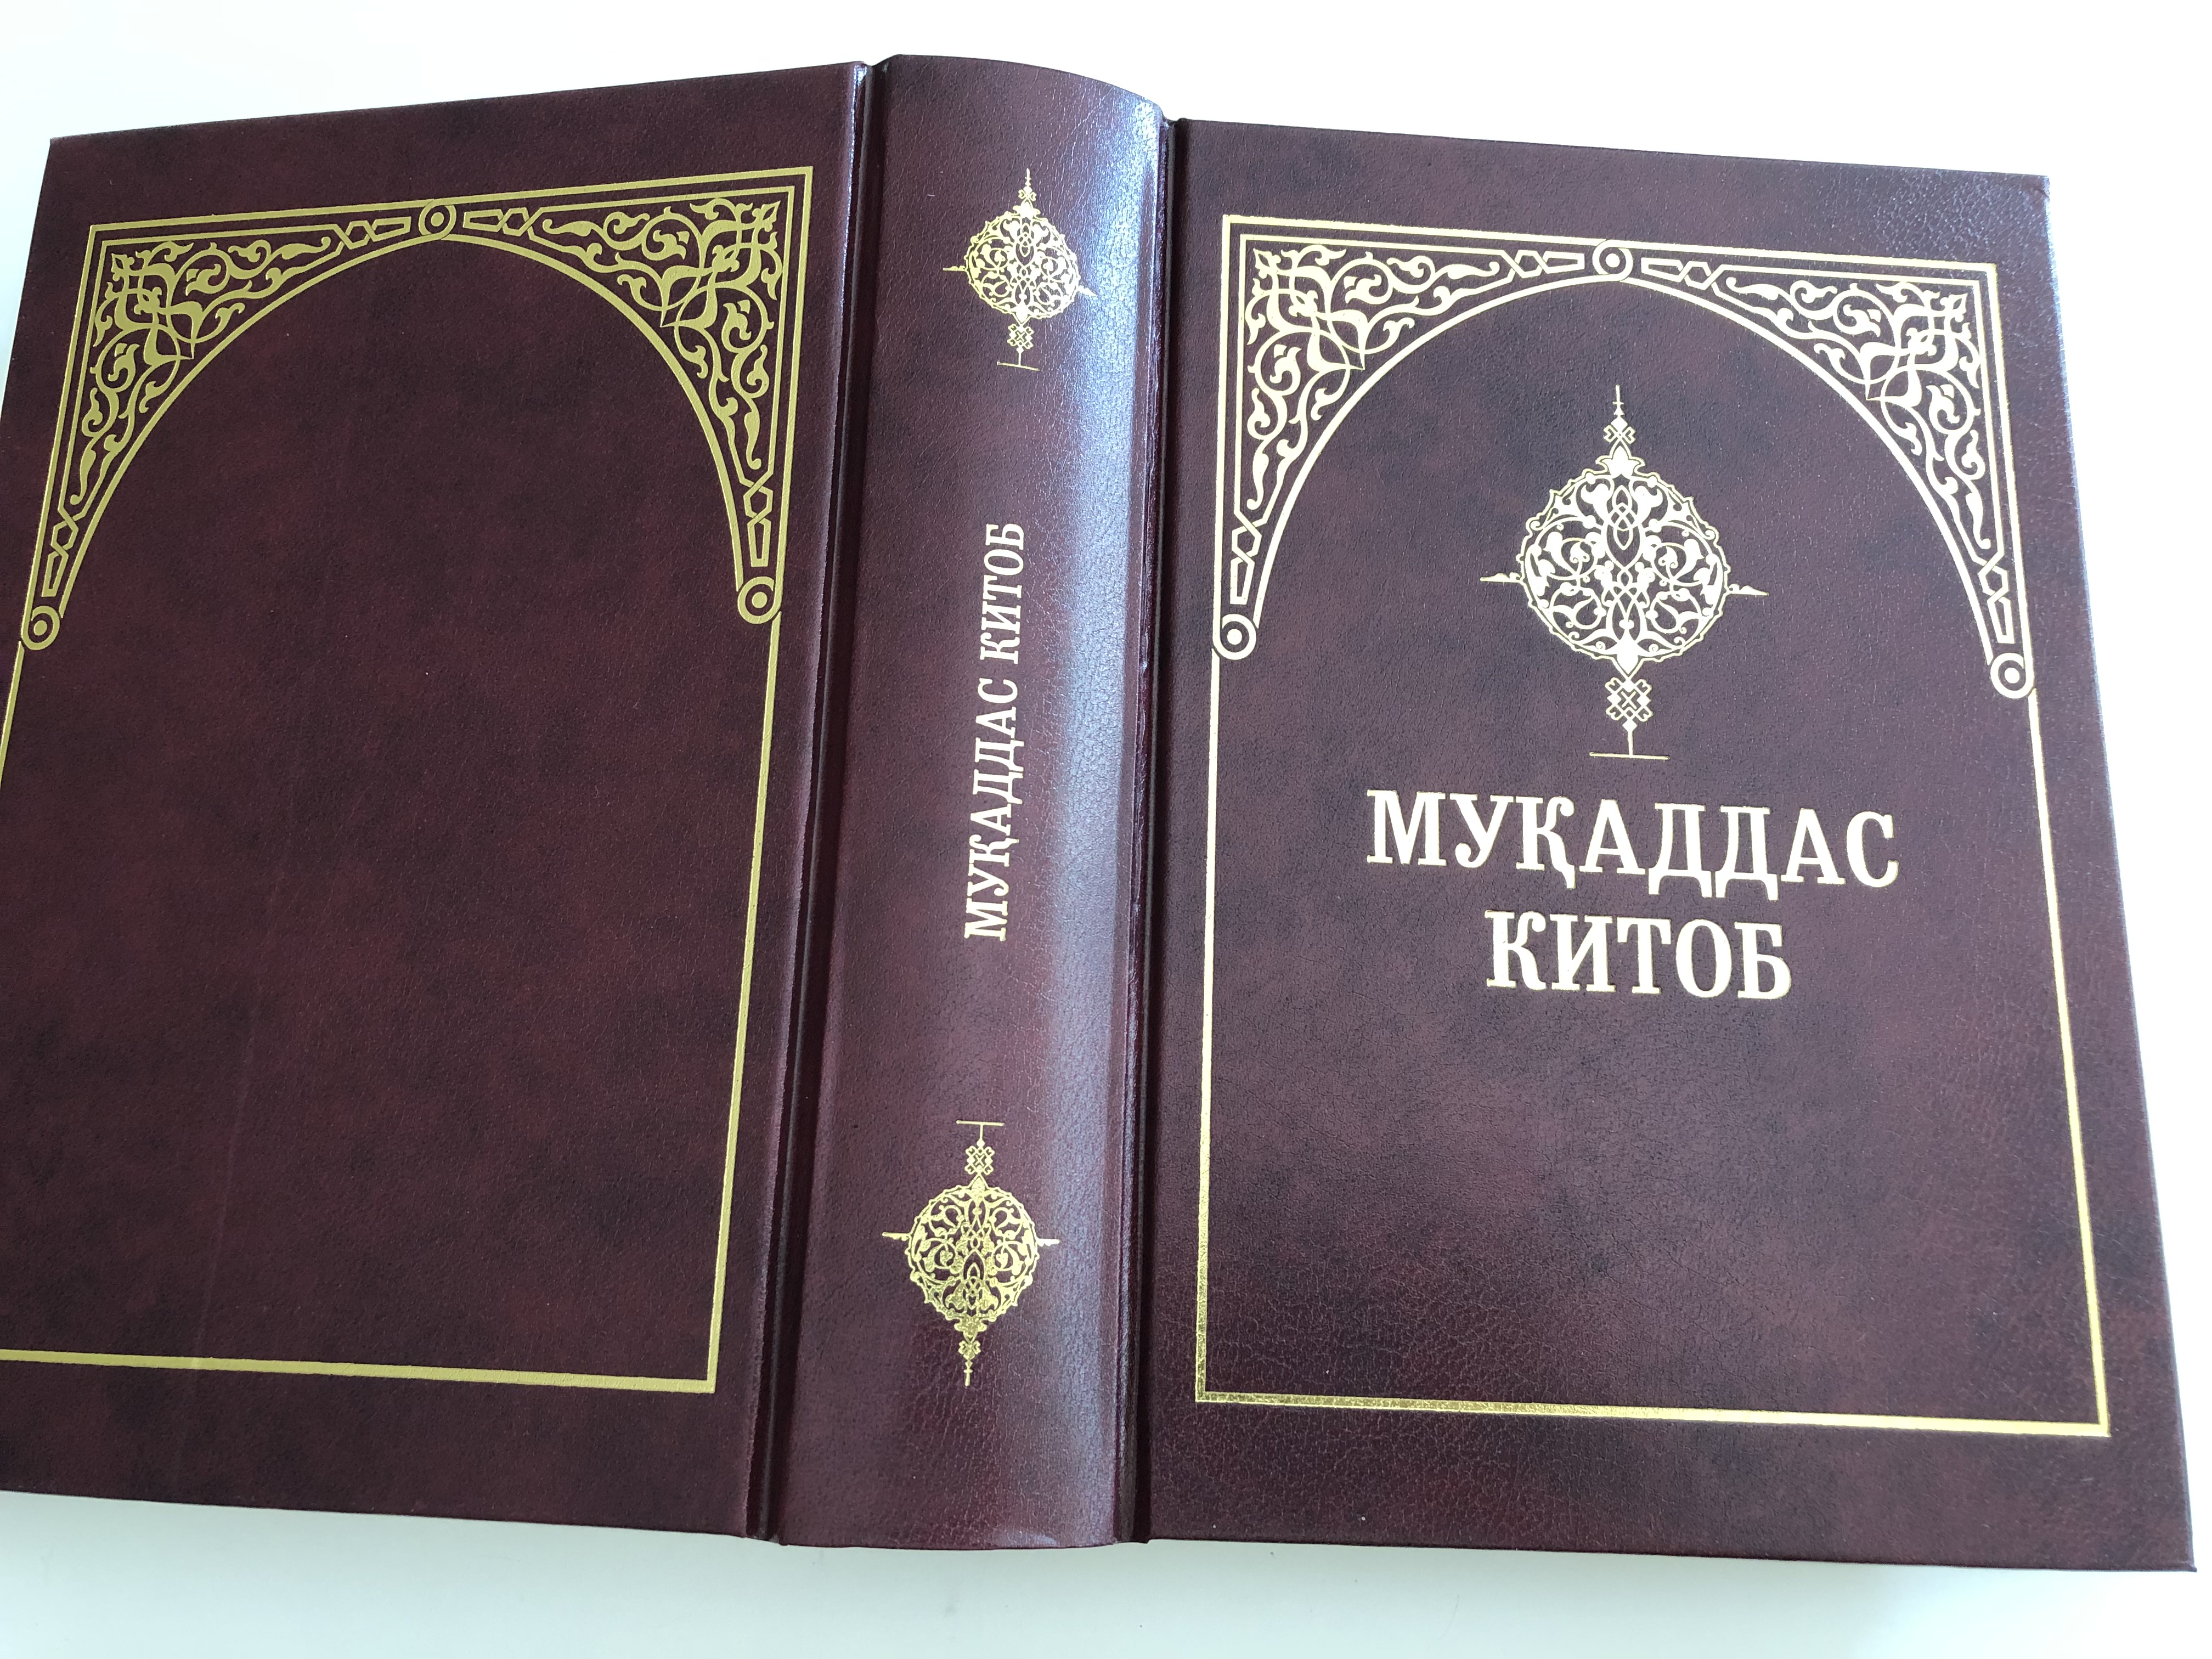 -uzbek-language-holy-bible-with-commentaries-and-nt-parallel-passage-tables-o-zbekcha-cyrillic-script-hardcover-2018-26-.jpg